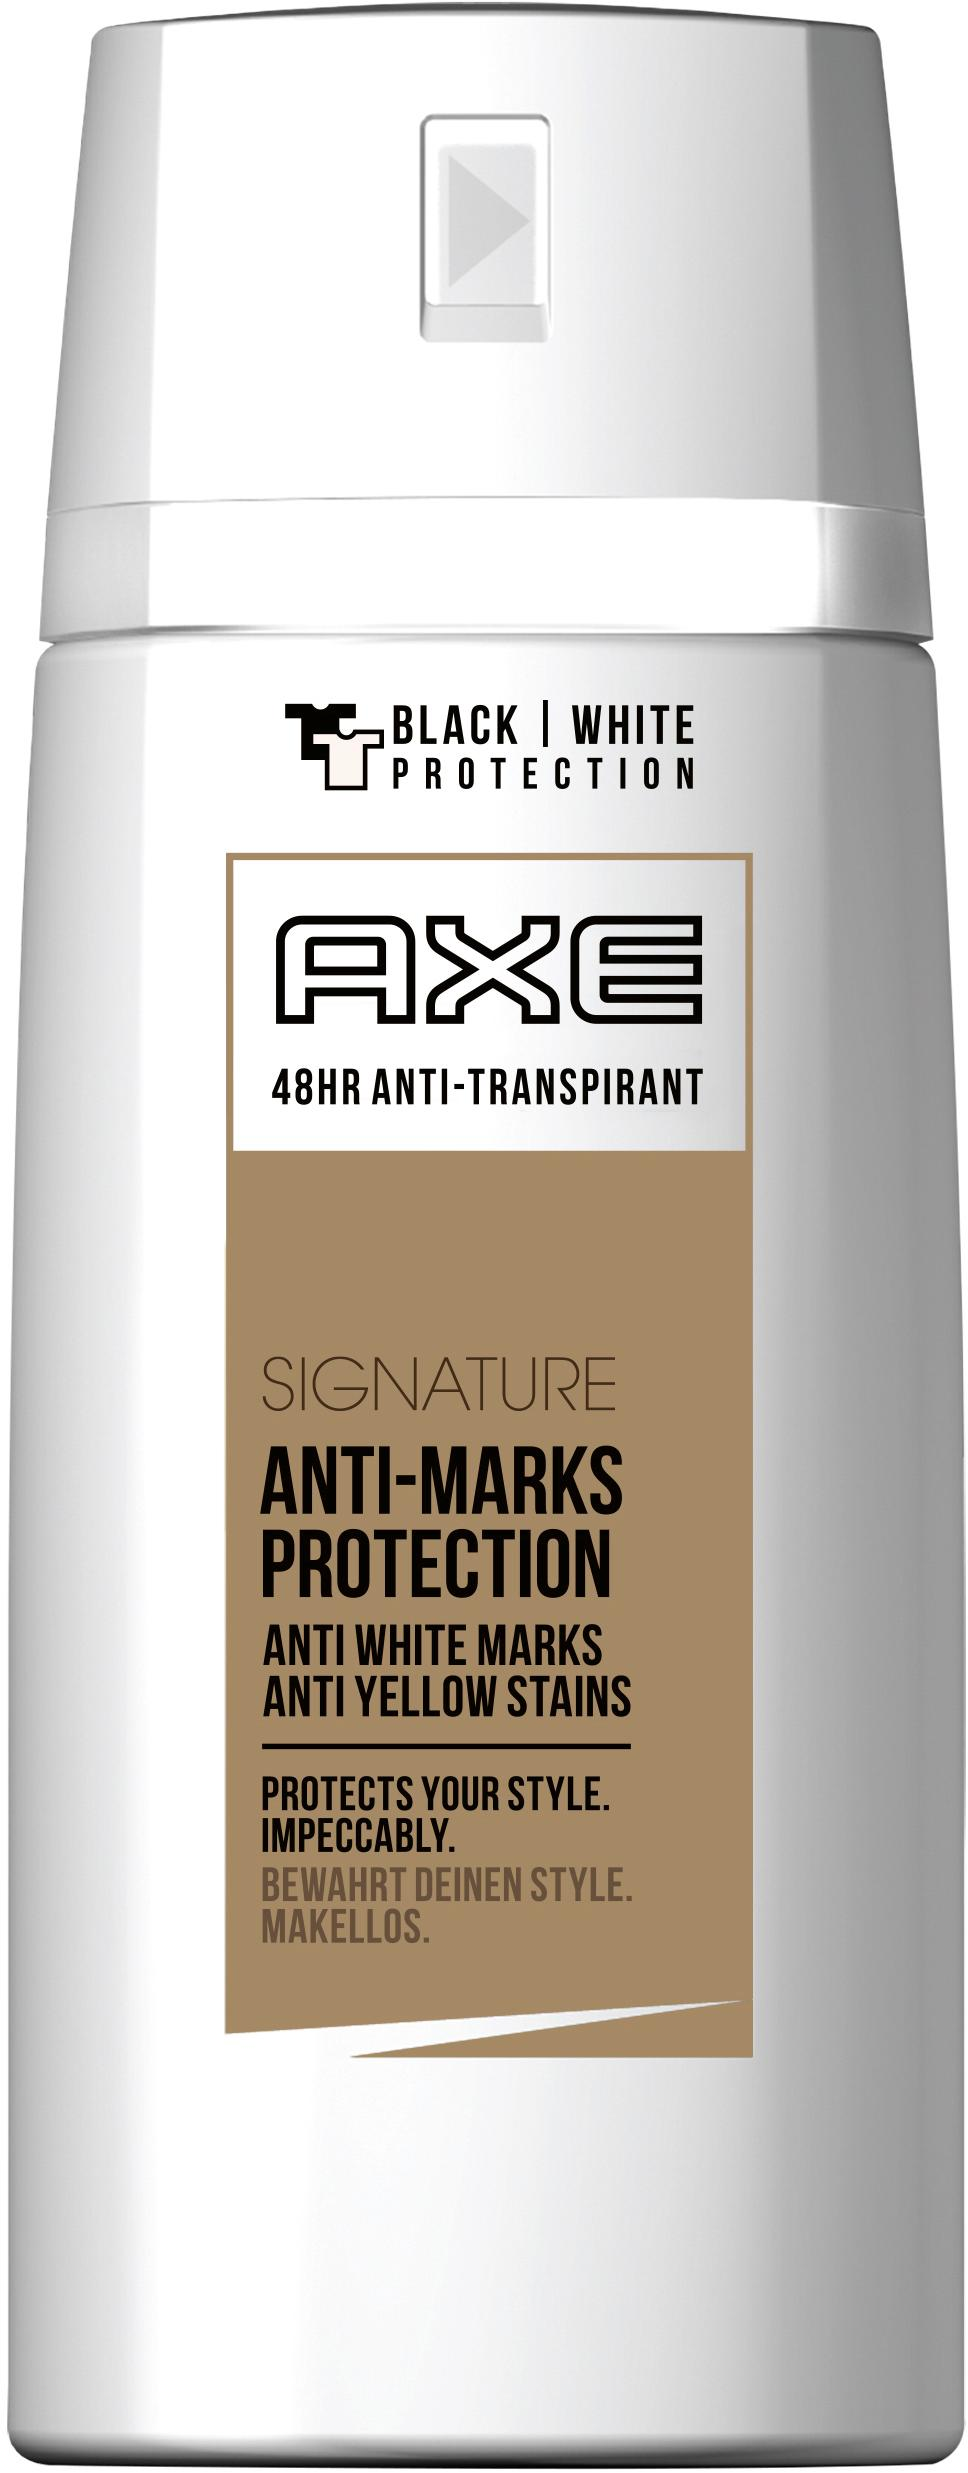 axe deospray signature anti transpirant 6er pack 6 x 150 ml beauty. Black Bedroom Furniture Sets. Home Design Ideas